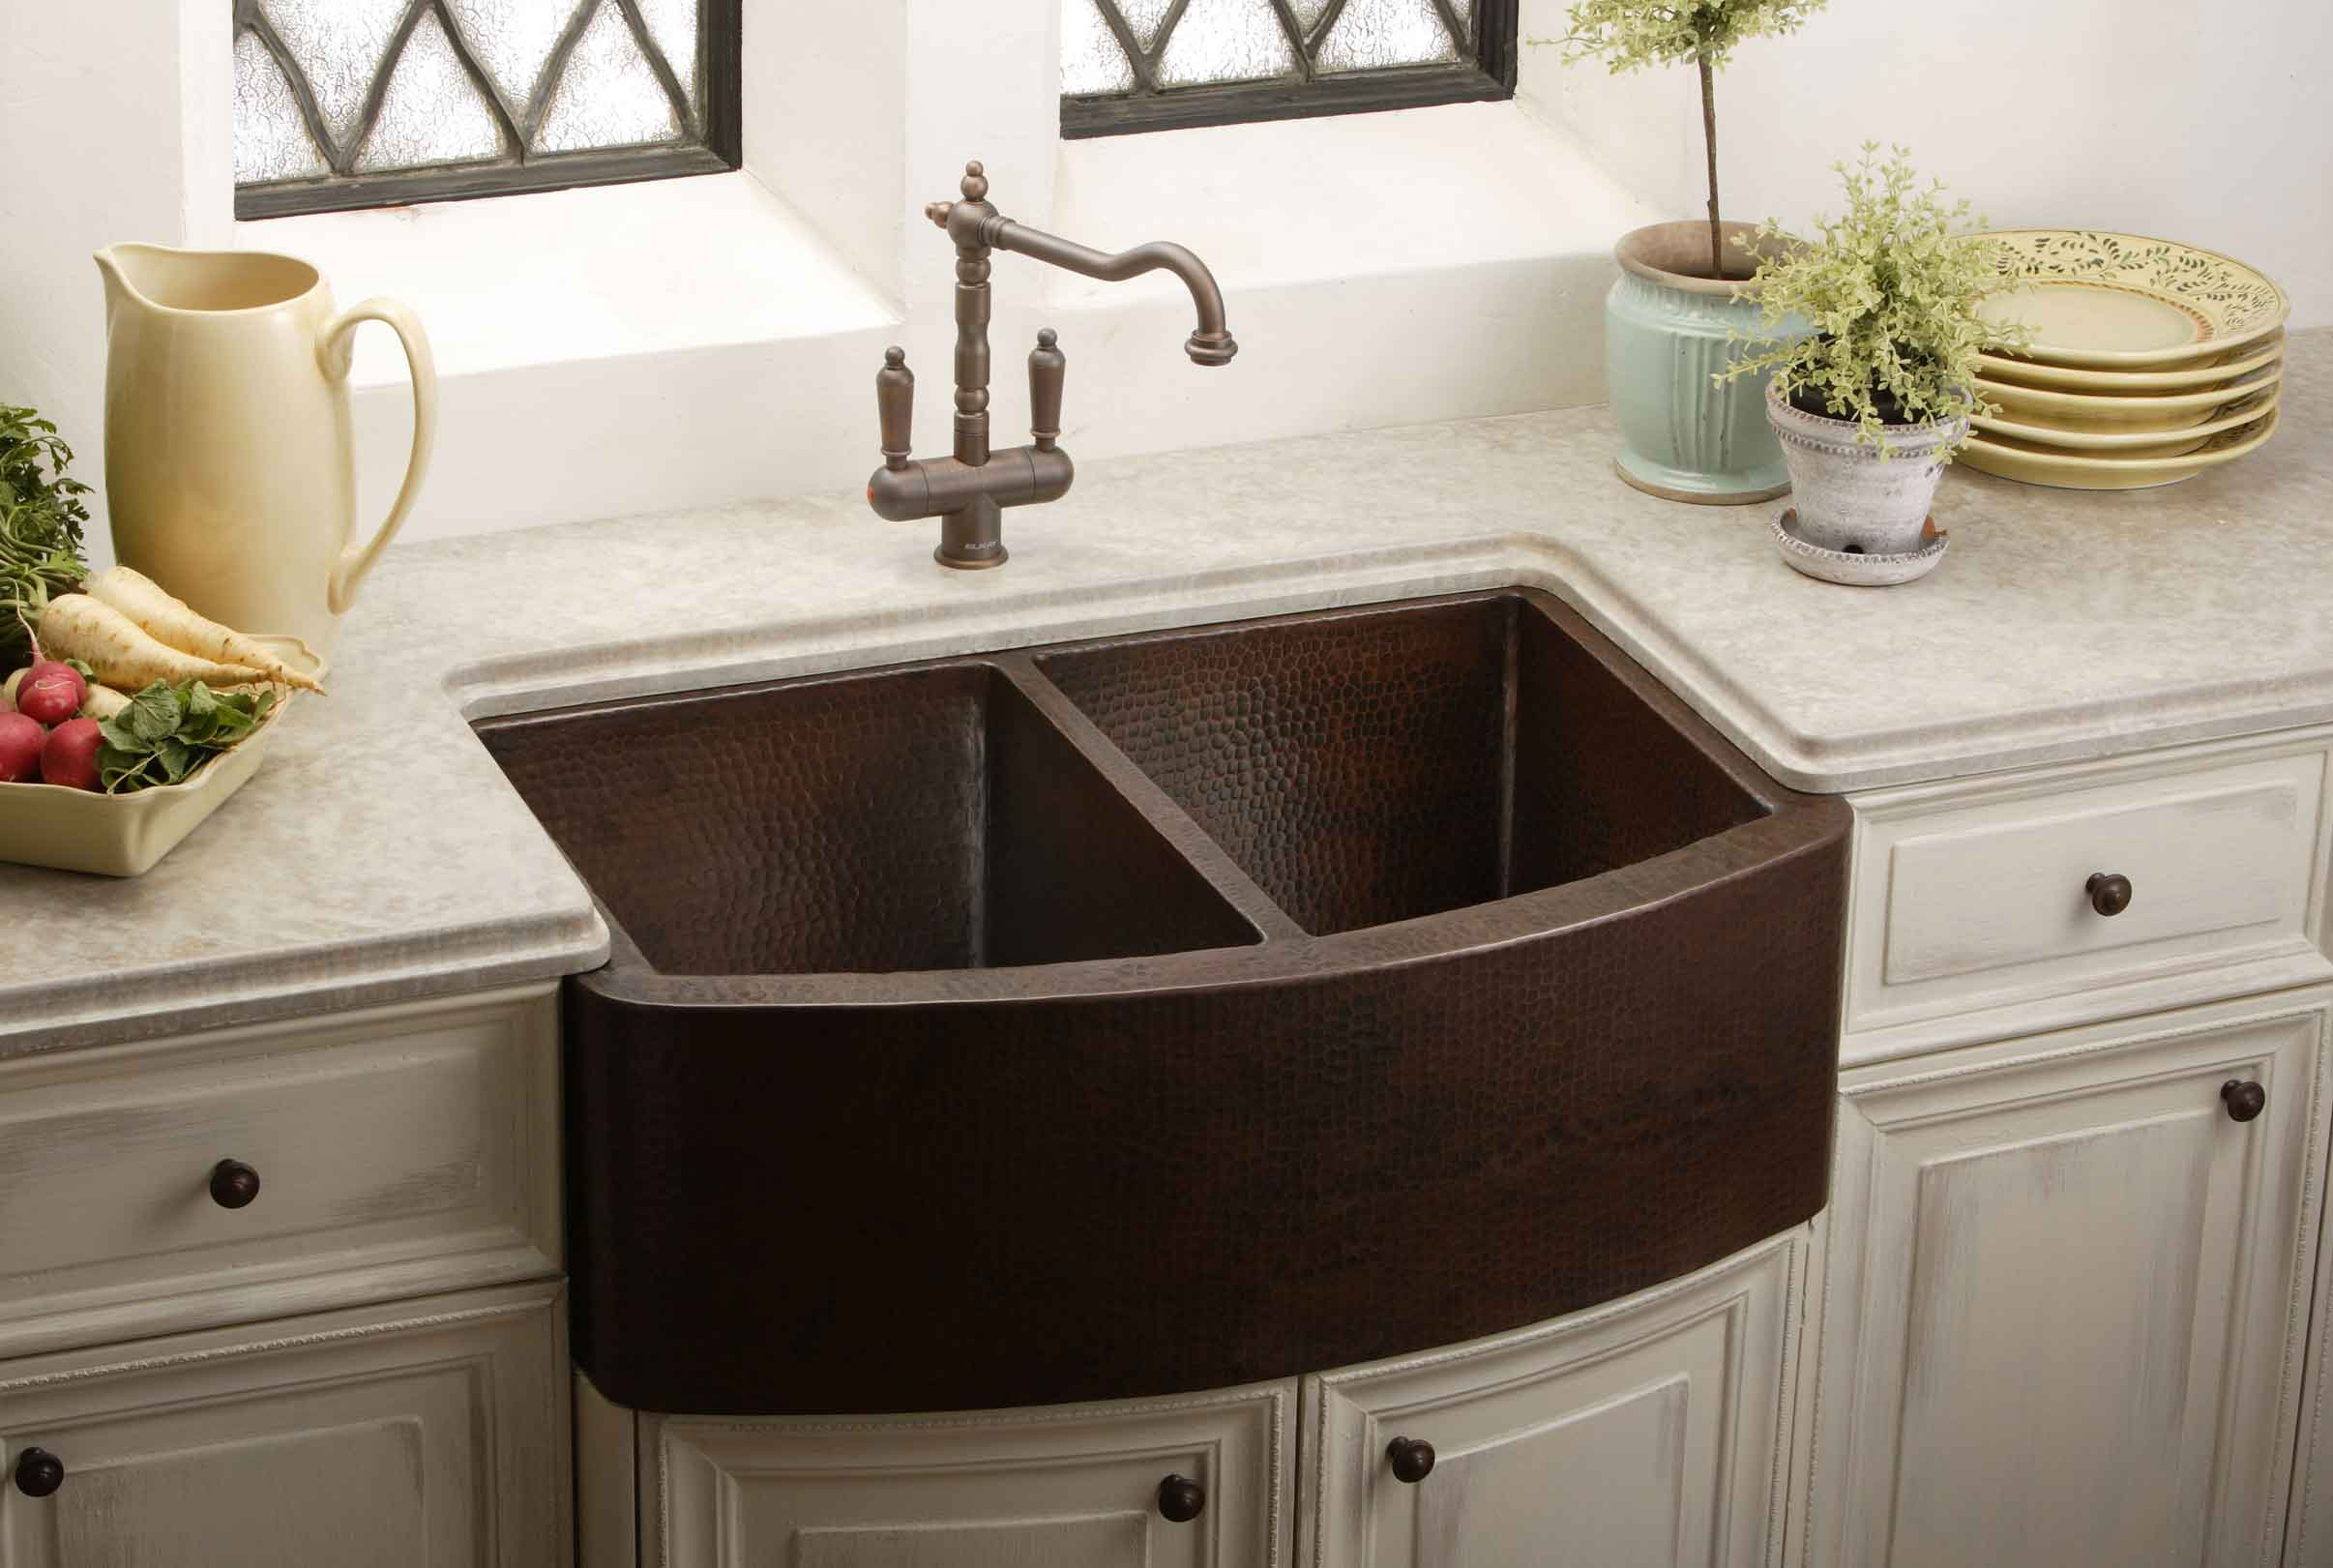 brown apron sink on white wooden kitchen cabinet with countertop and faucet bridge for kitchen decor ideas